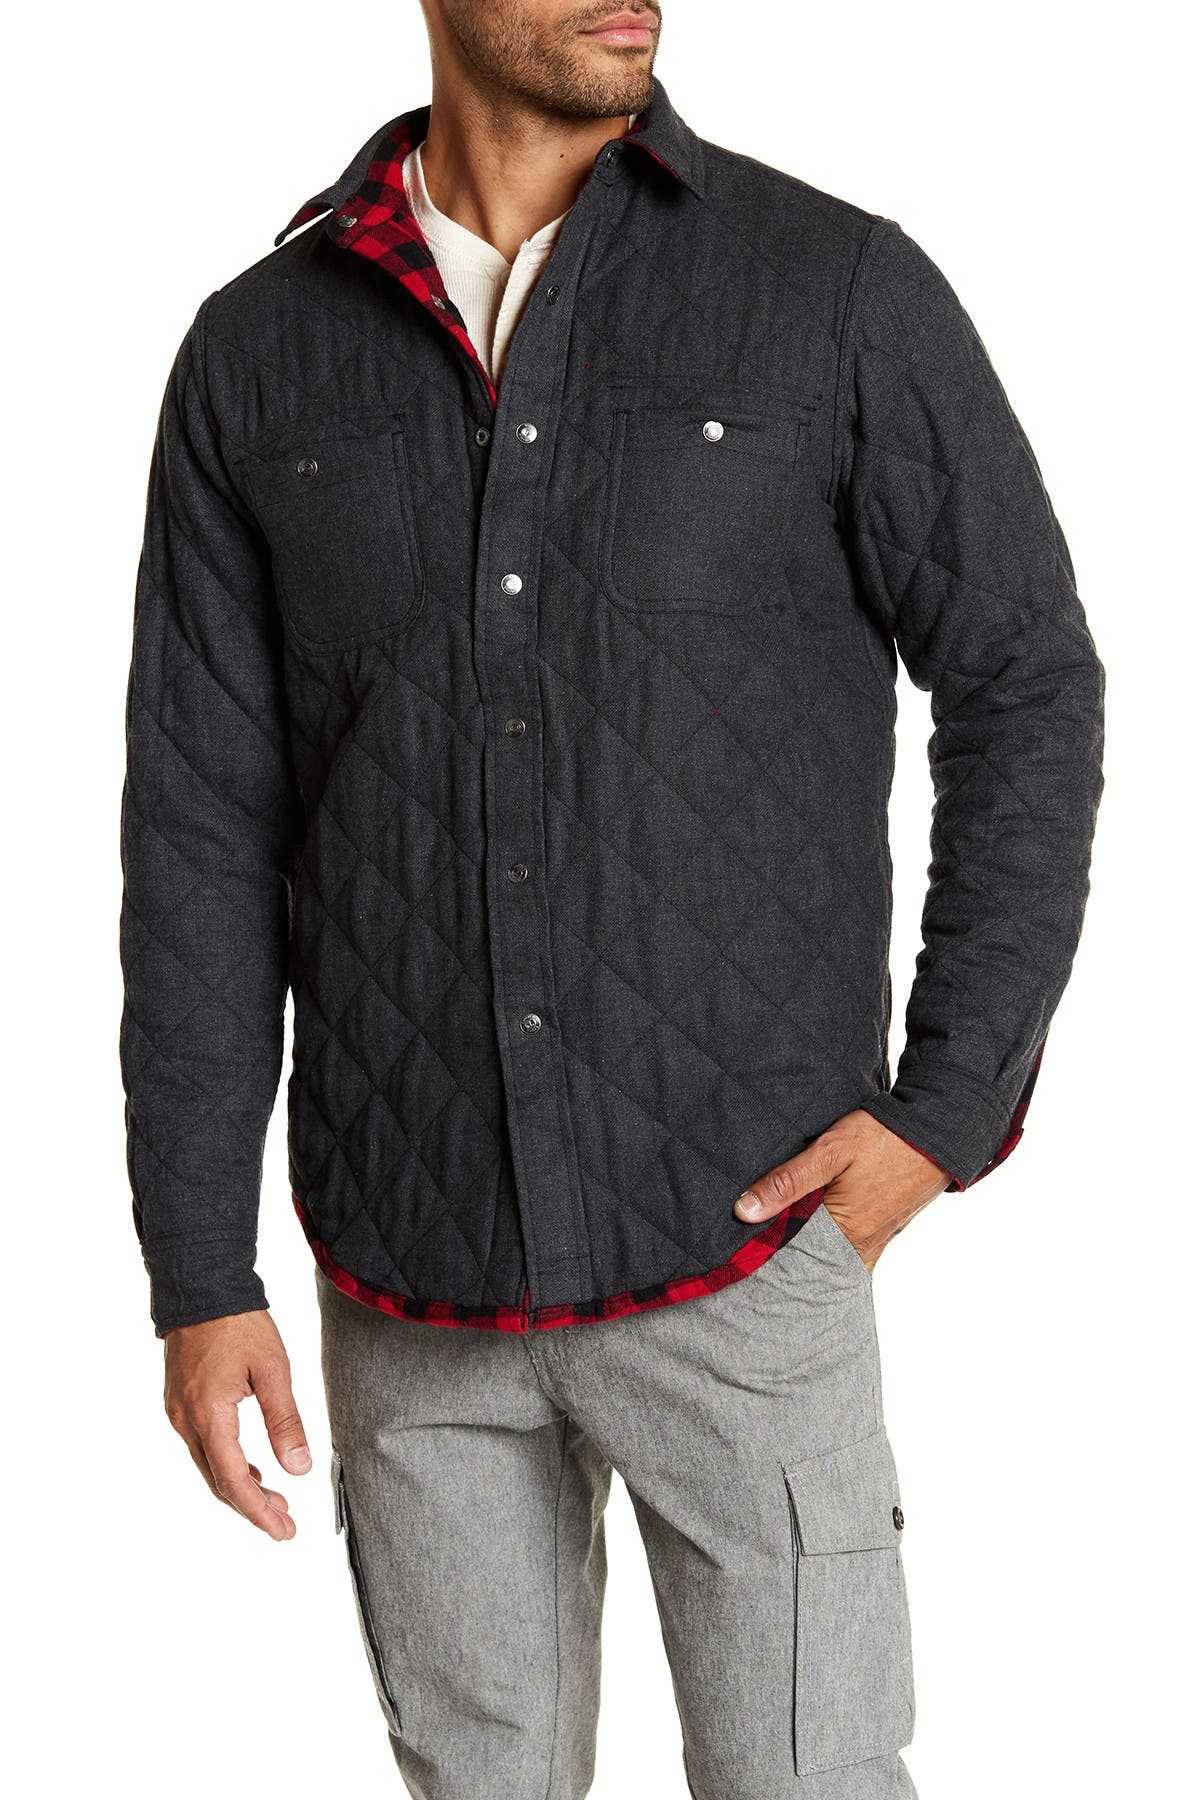 Image of Tailor Vintage Quilted Reversible Flannel Shirt Jacket